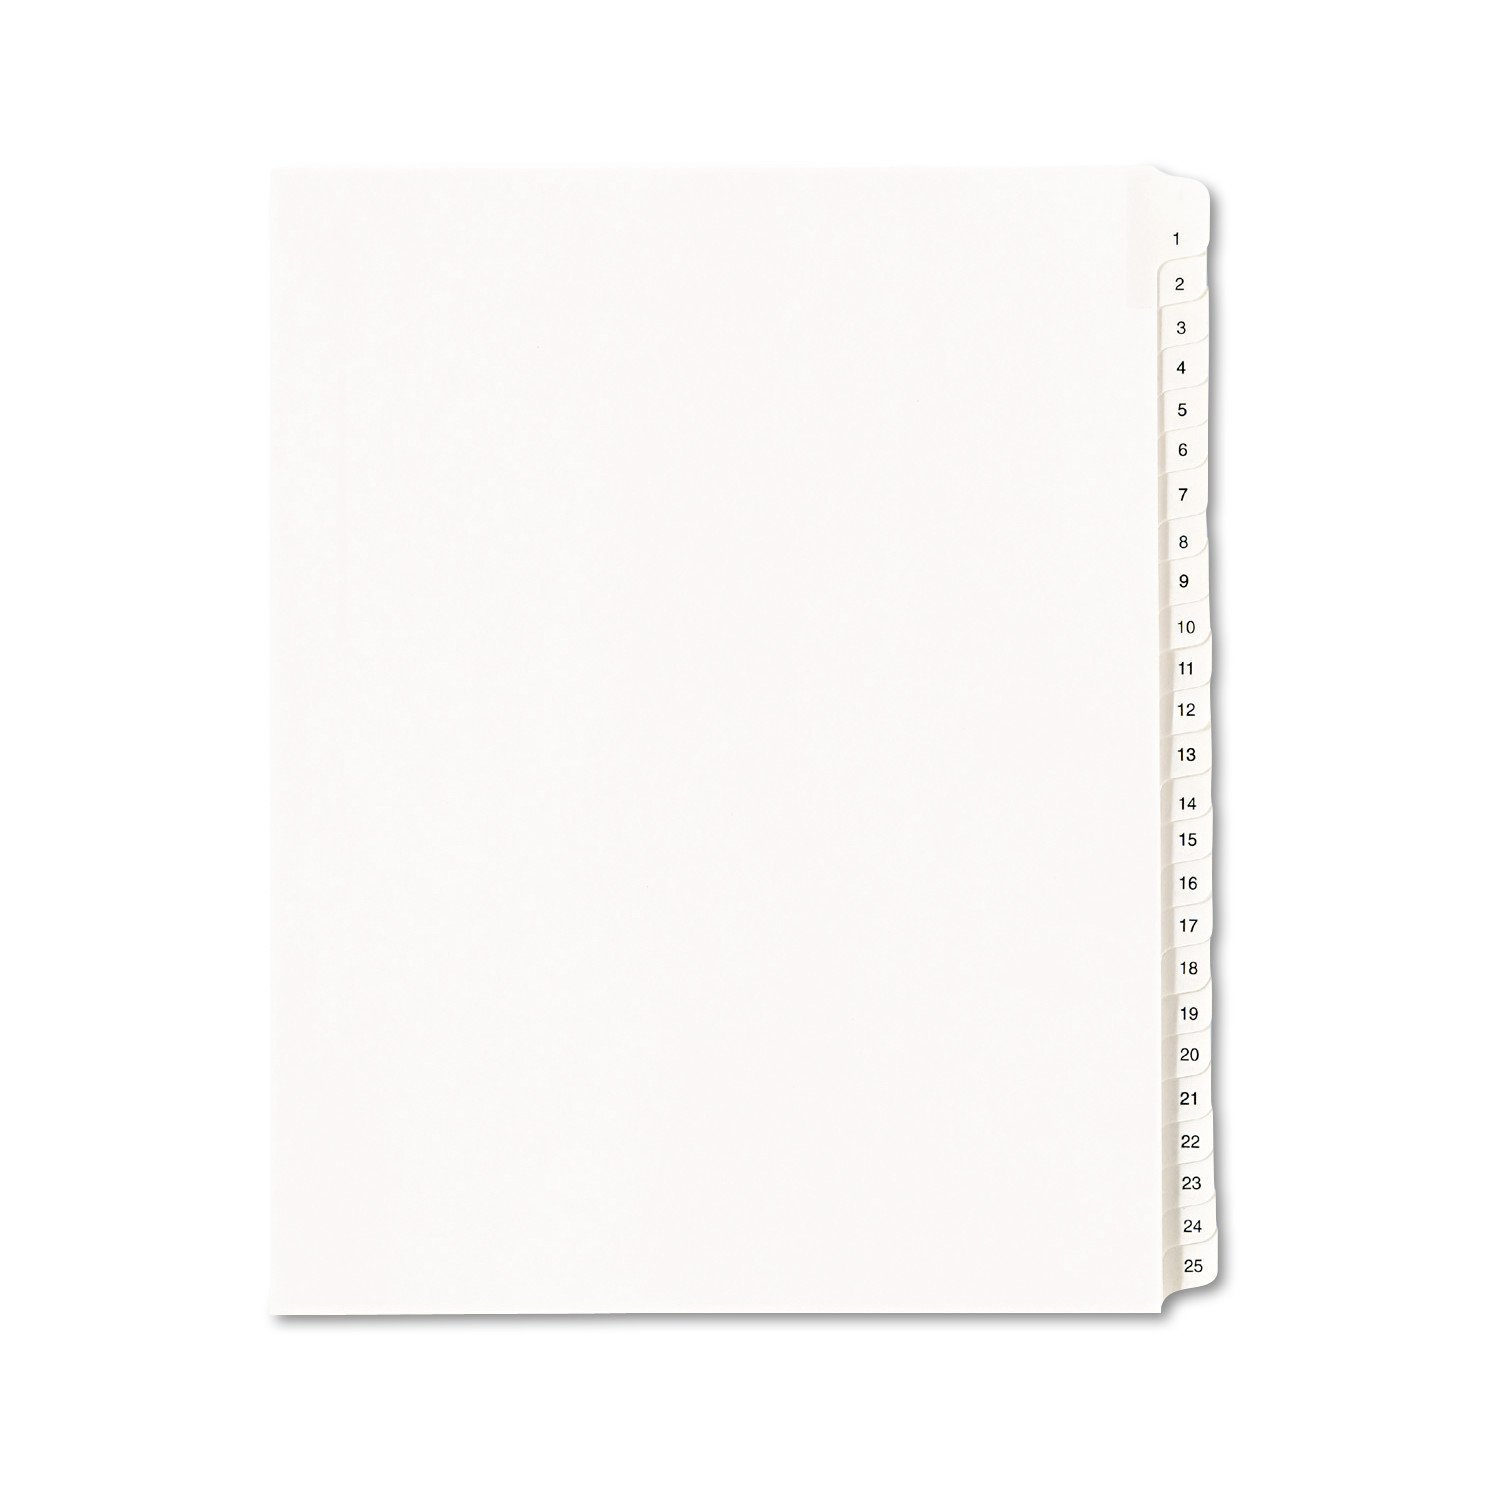 Avery Collated Legal Dividers Allstate, Letter Size, Tabs 1-25, White, 1 Set (1701)